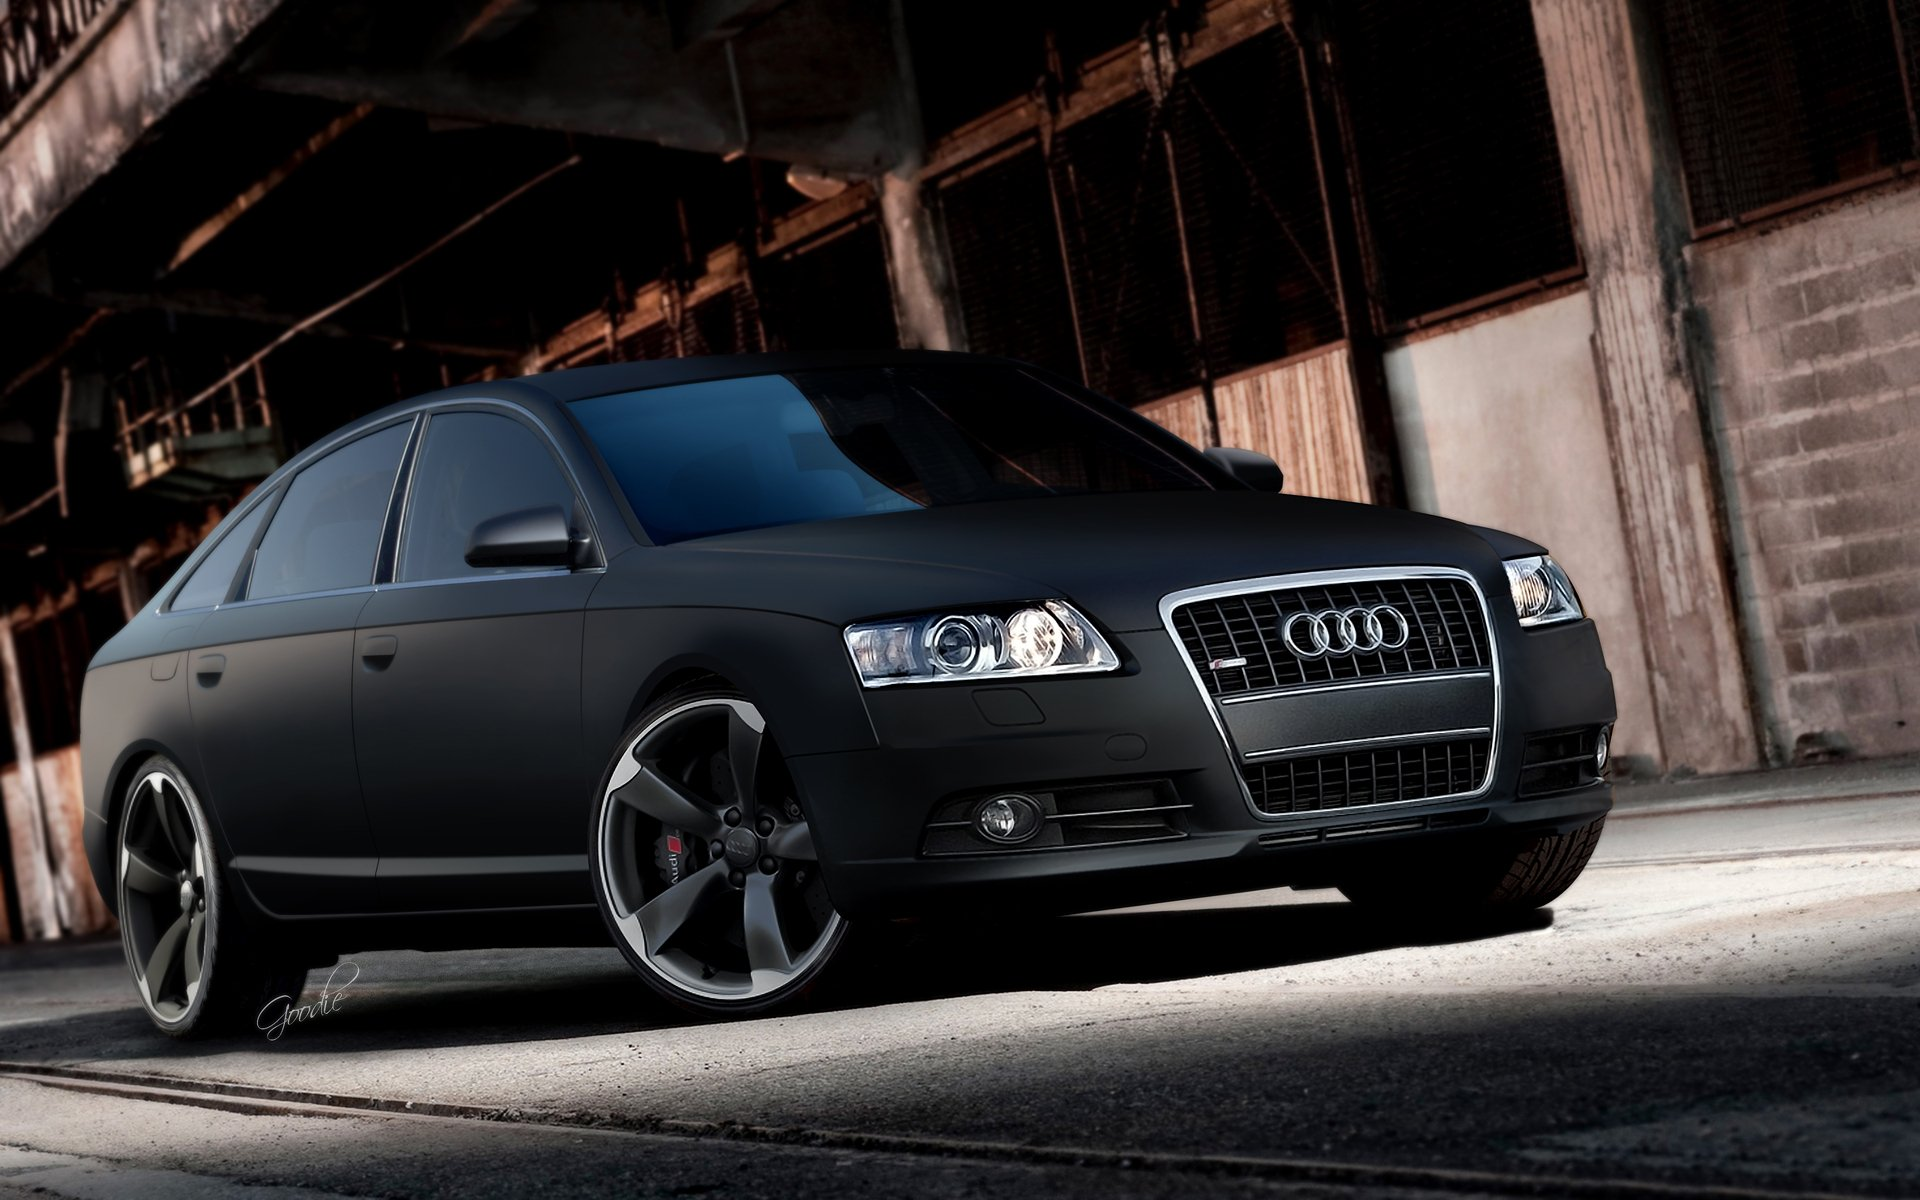 1920x1200 - Audi A6 Wallpapers 2